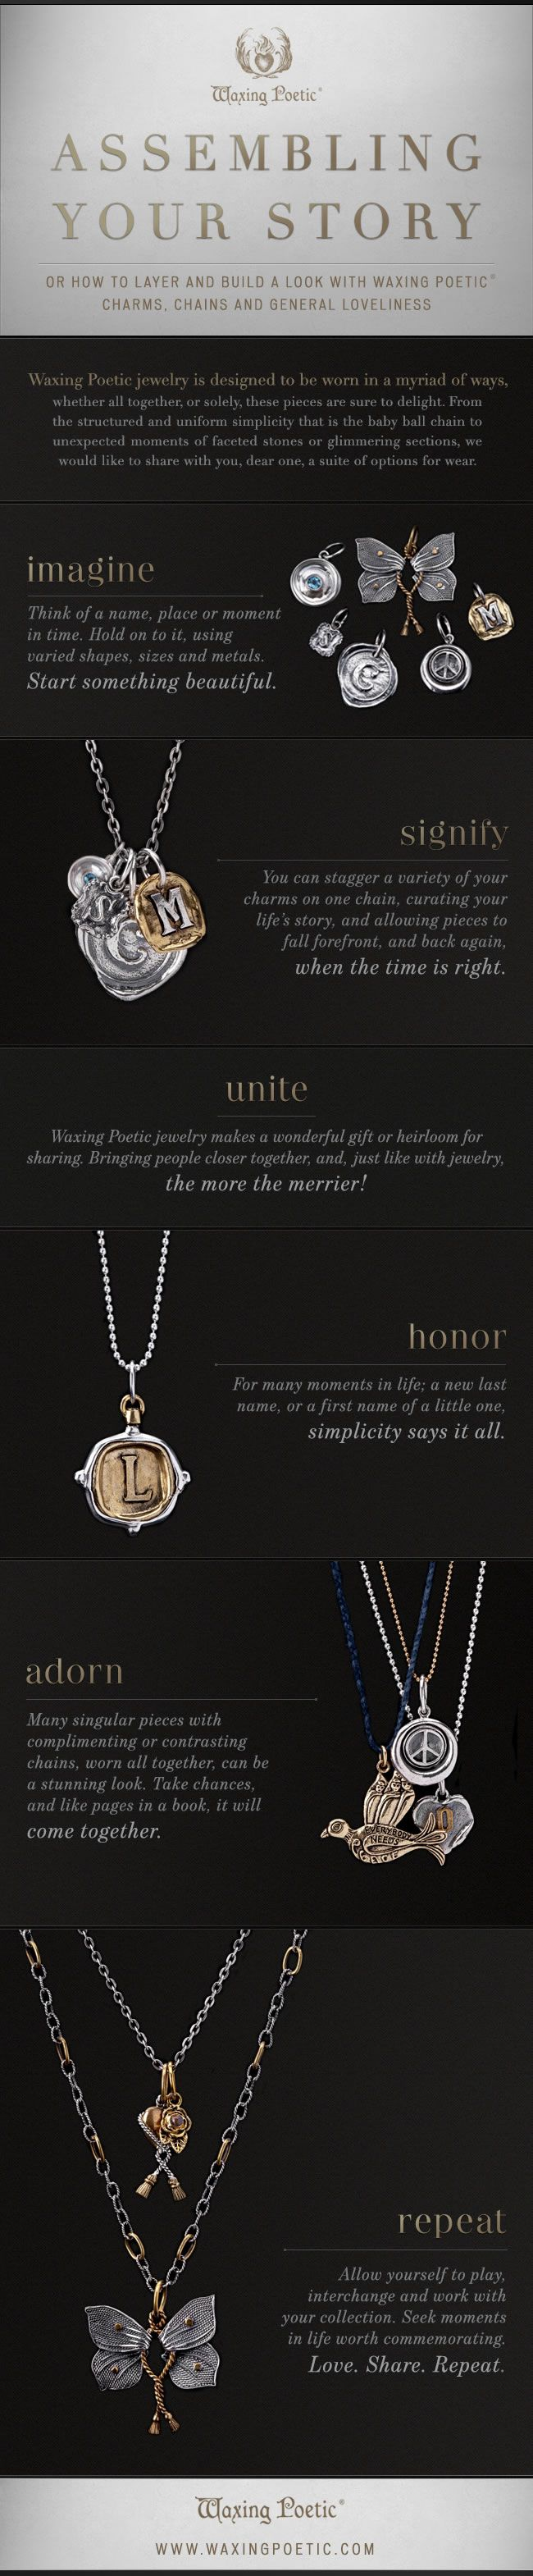 Waxing Poetic INSTRUCTOGRAPHIC. Take a look, pass it on. XO #waxingpoeticjewelry #love Available at the Wild Goose